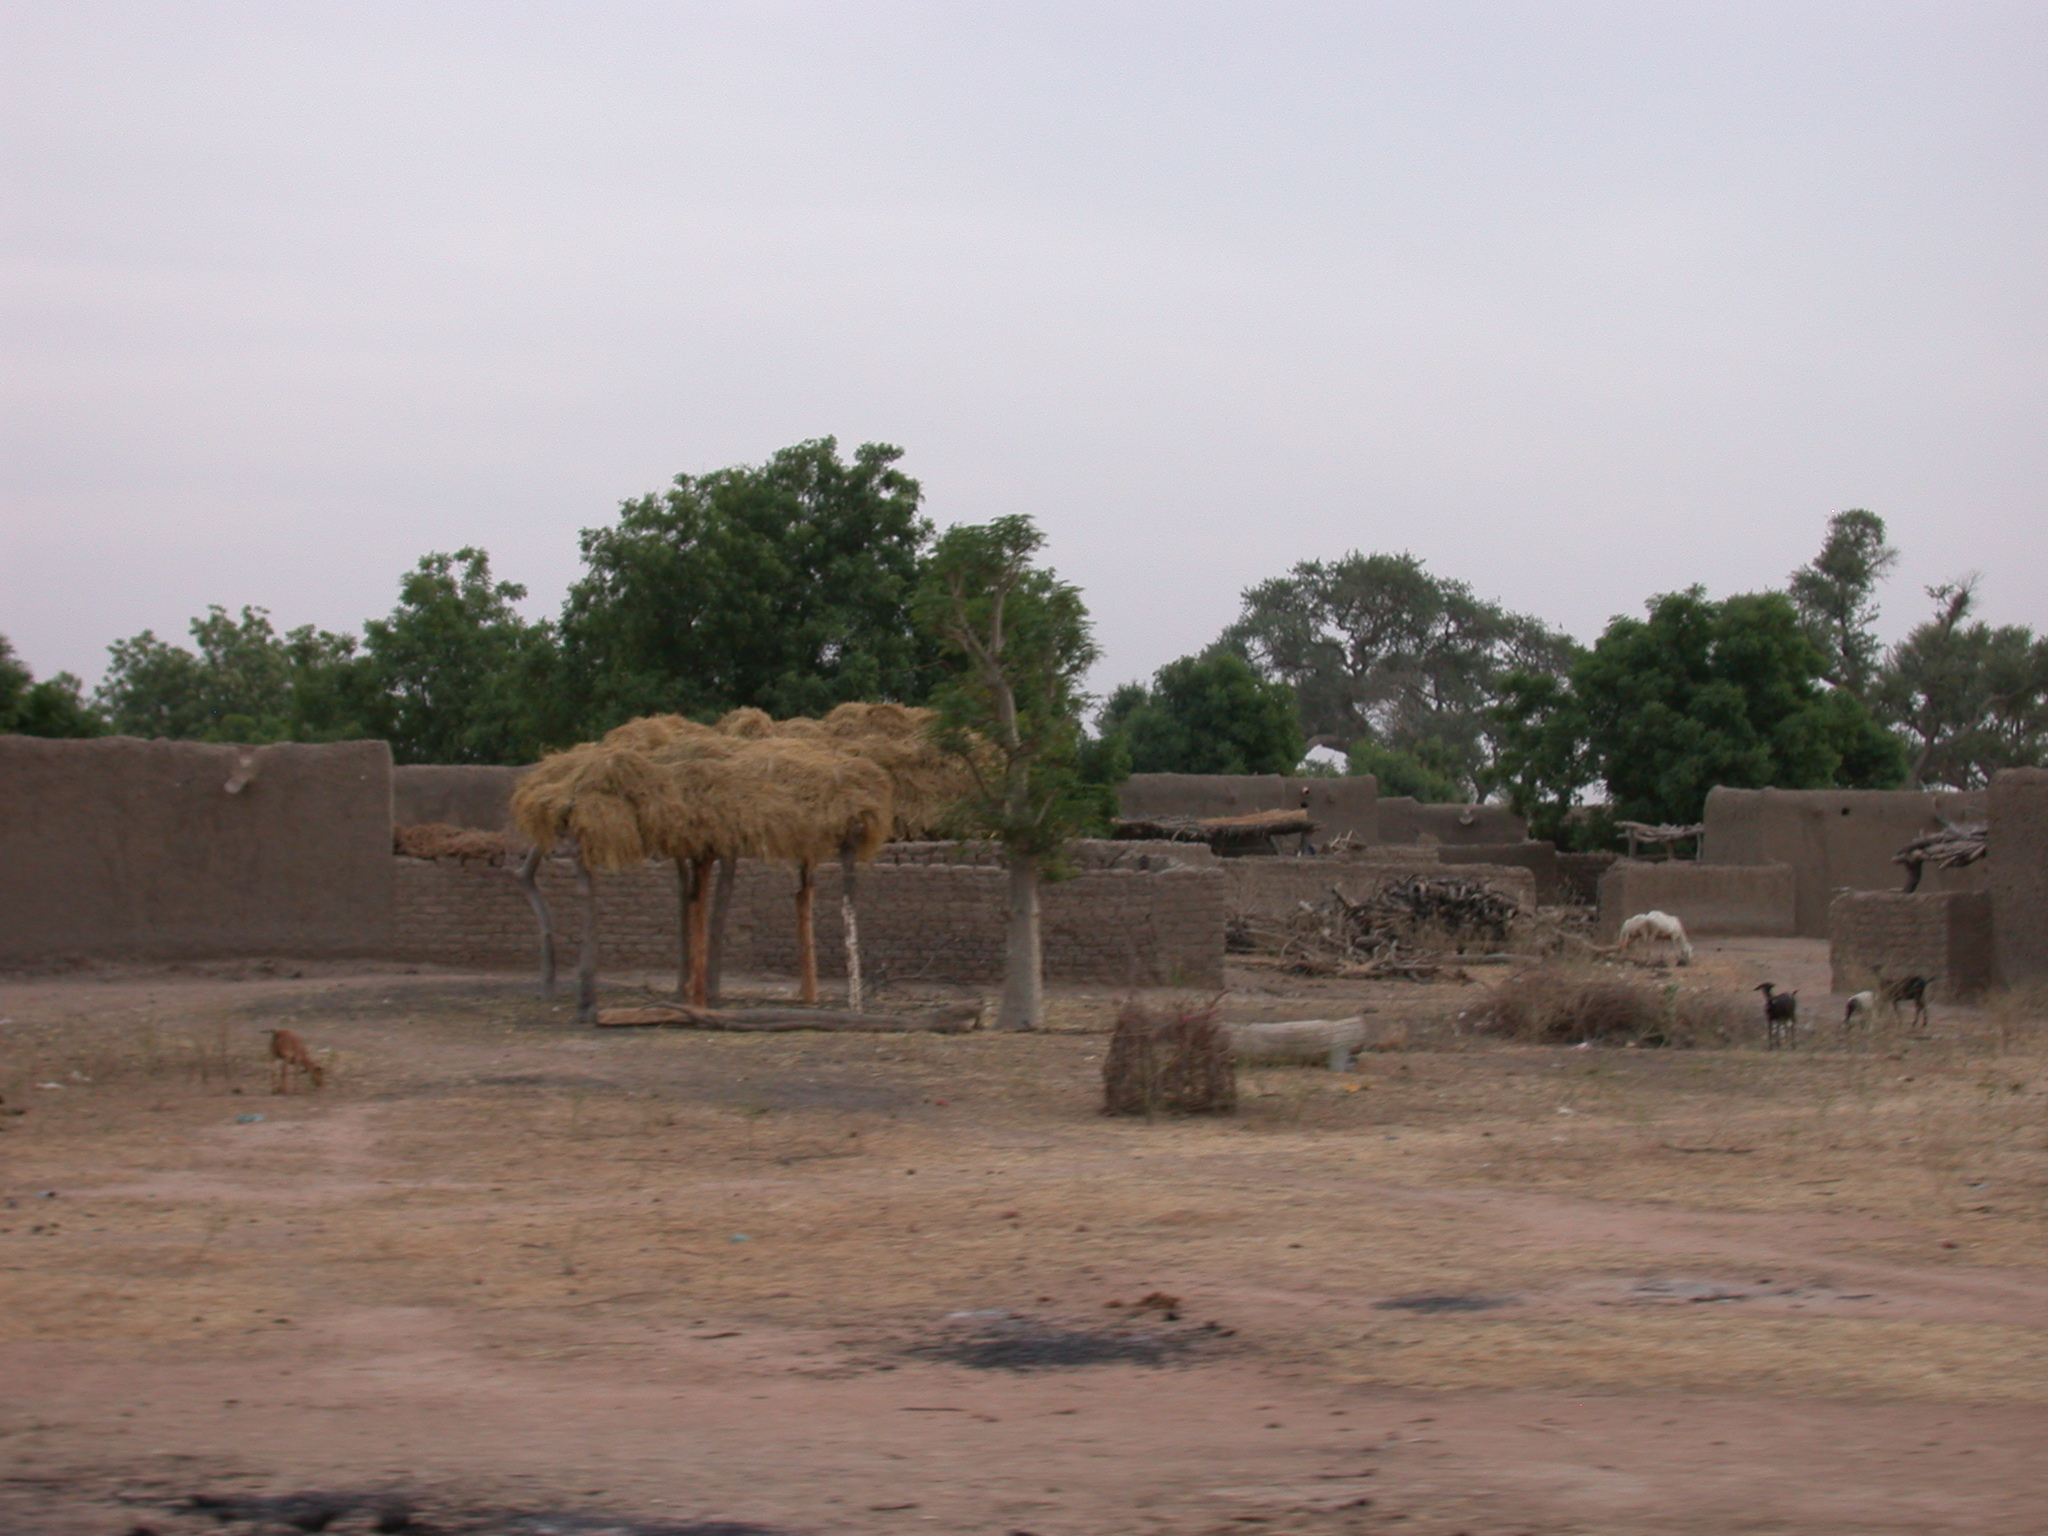 Landscape on Road From Massina to Say, Mali